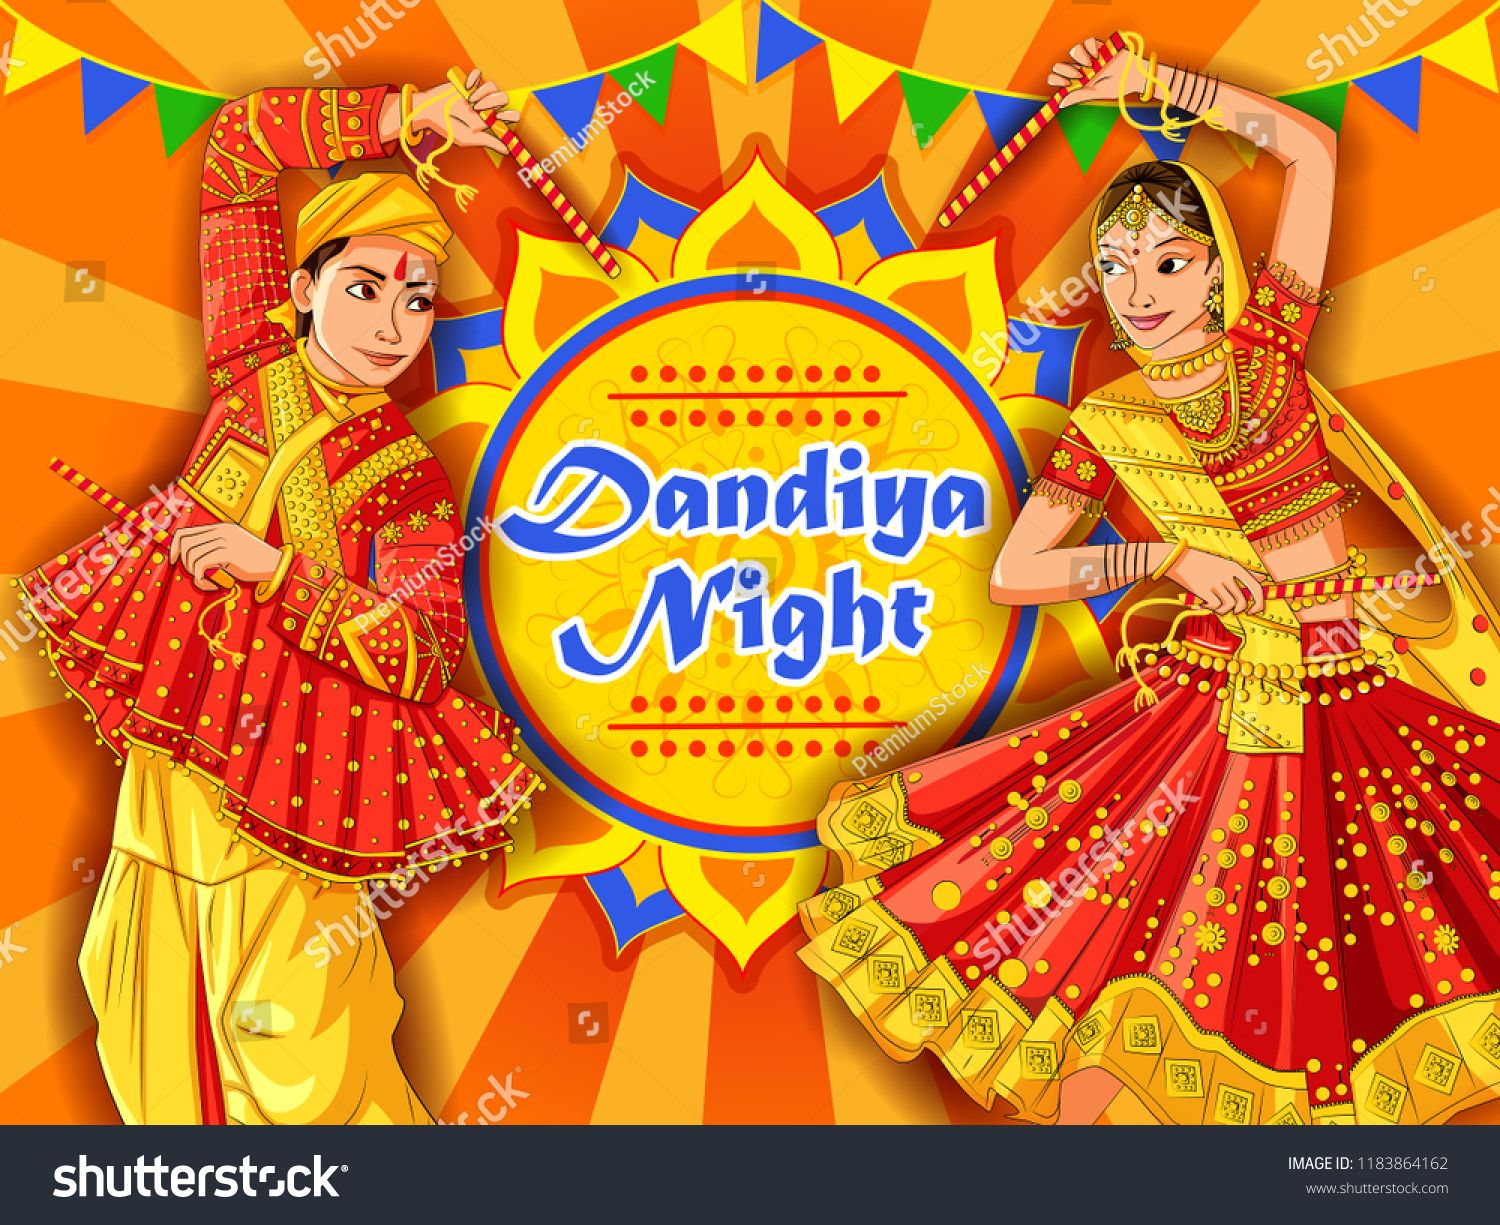 Vector Design Of Indian Couple Playing Garba In Dandiya Night Navratri Dussehra Festival Of Indiacouple Playing Navratri Festival Festival Celebration Festival